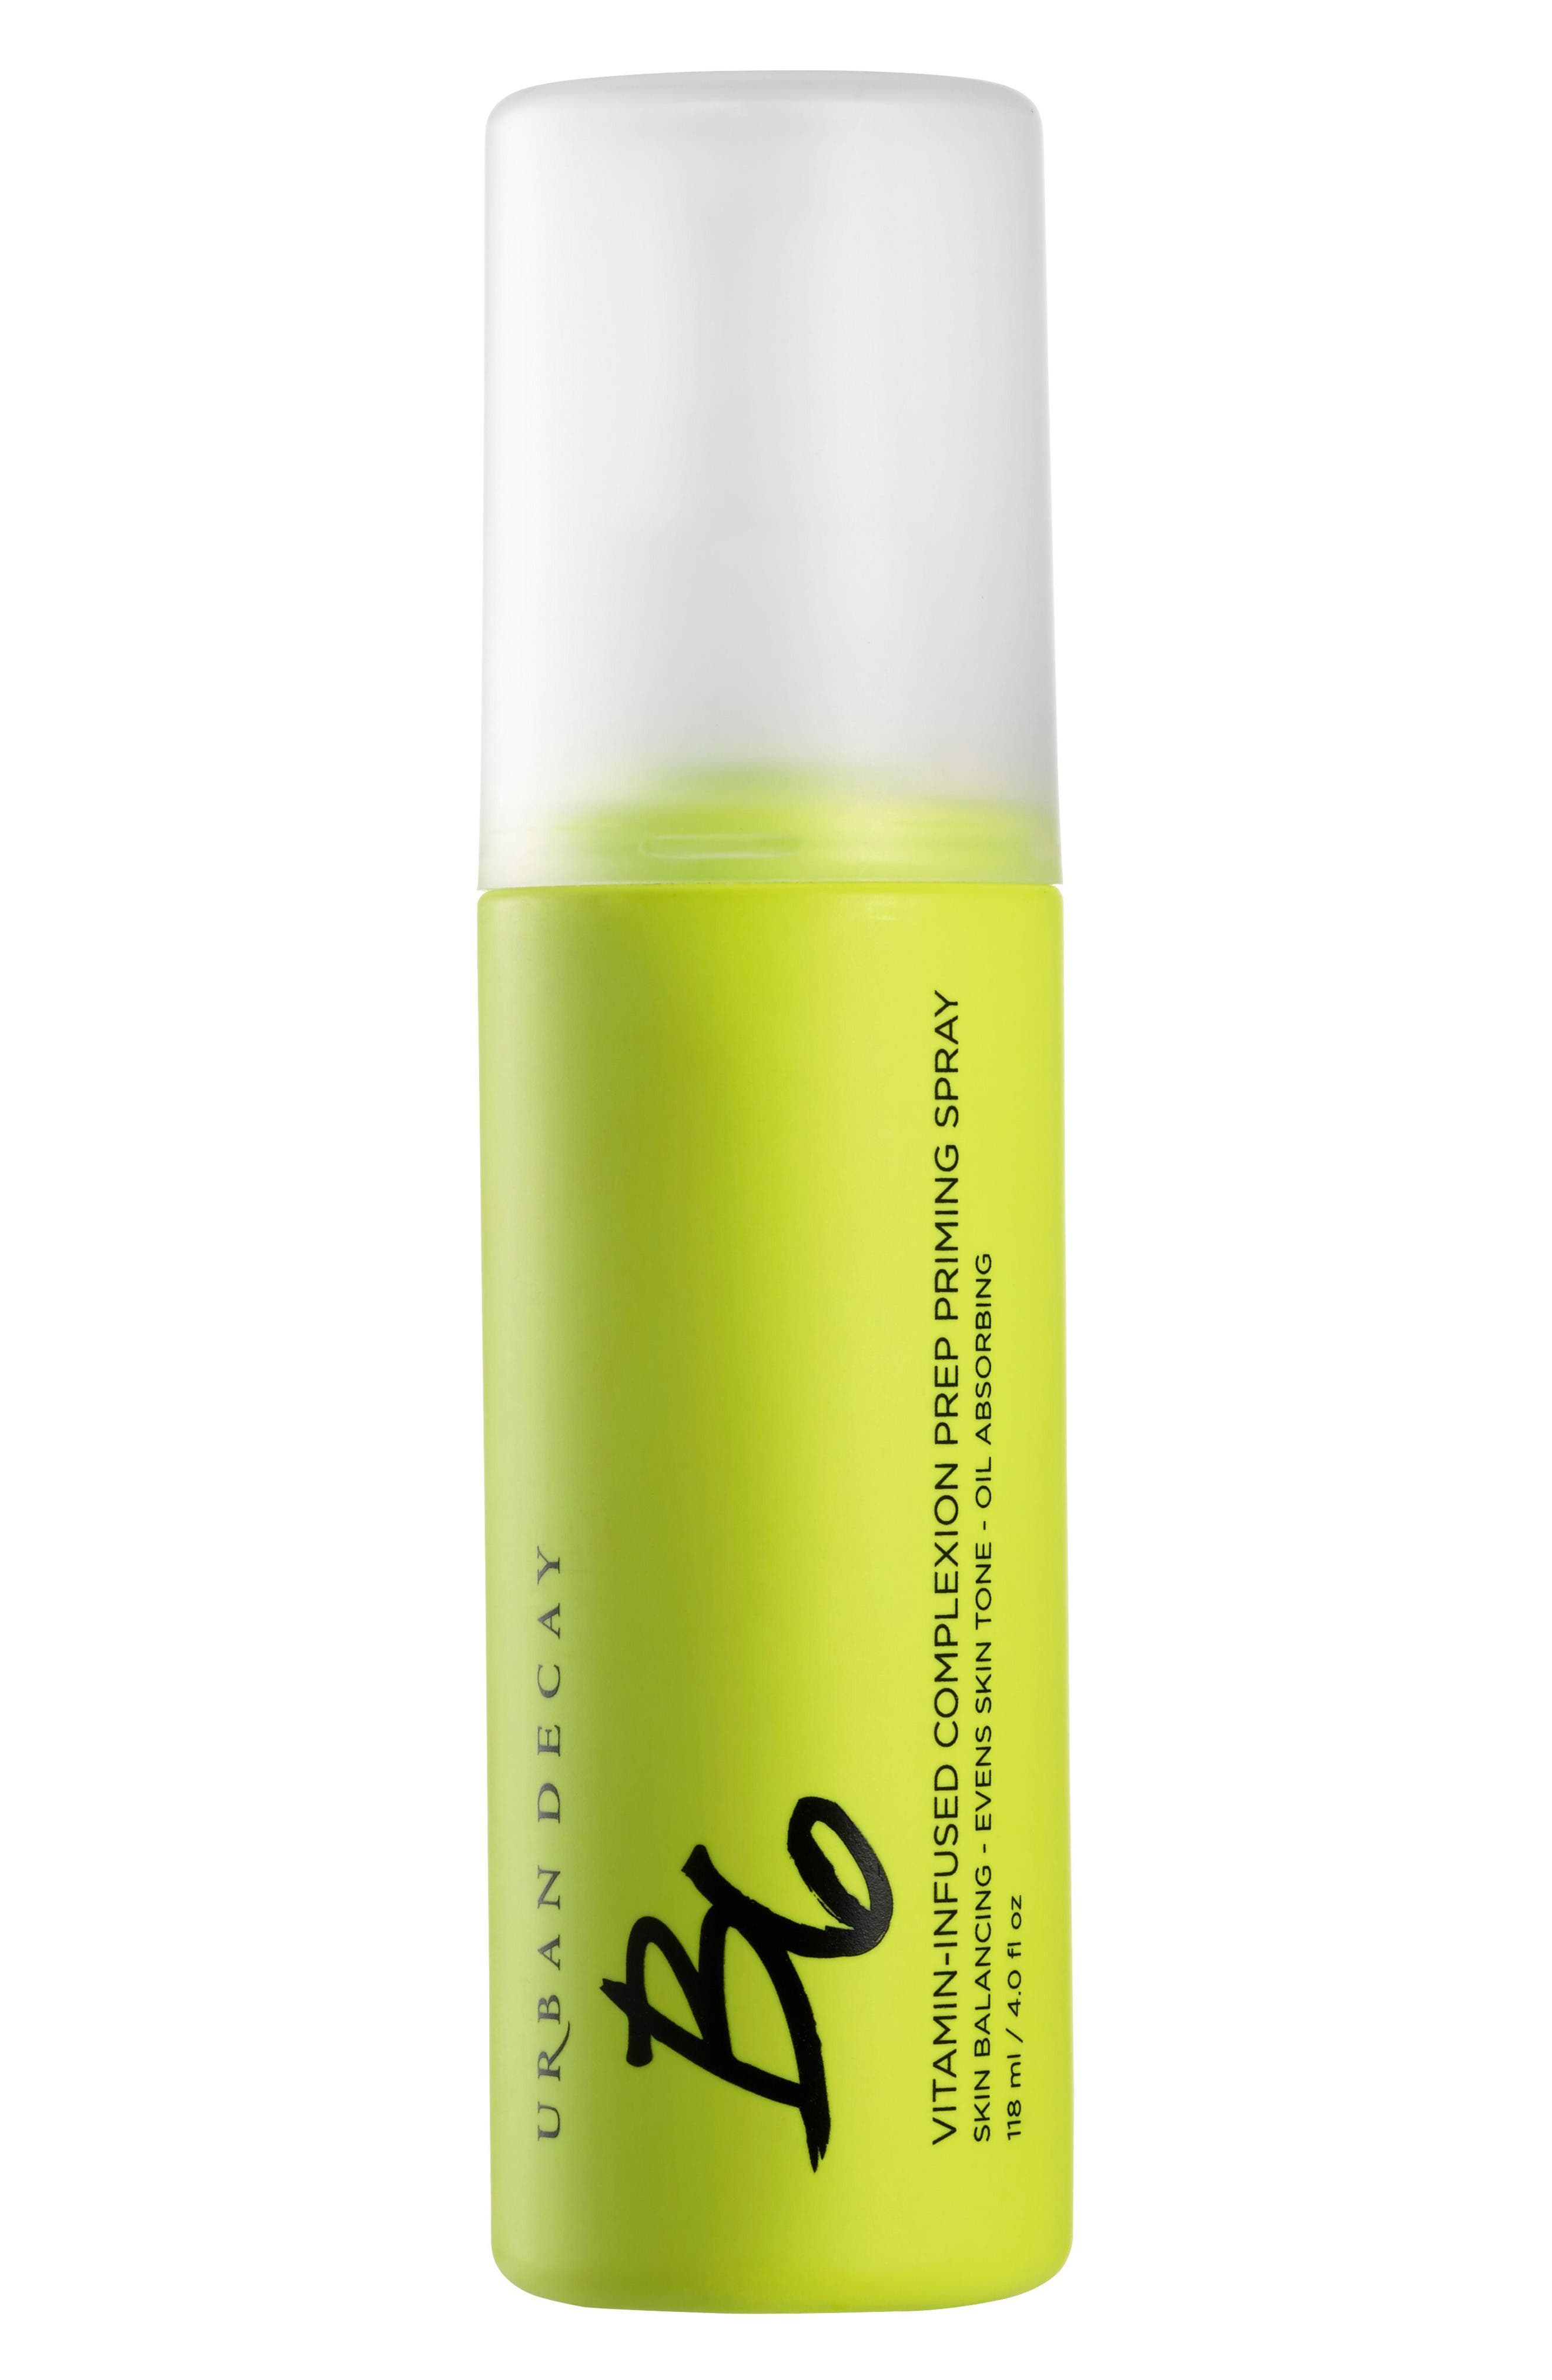 Alternate Image 1 Selected - Urban Decay B6 Vitamin-Infused Complexion Prep Priming Spray